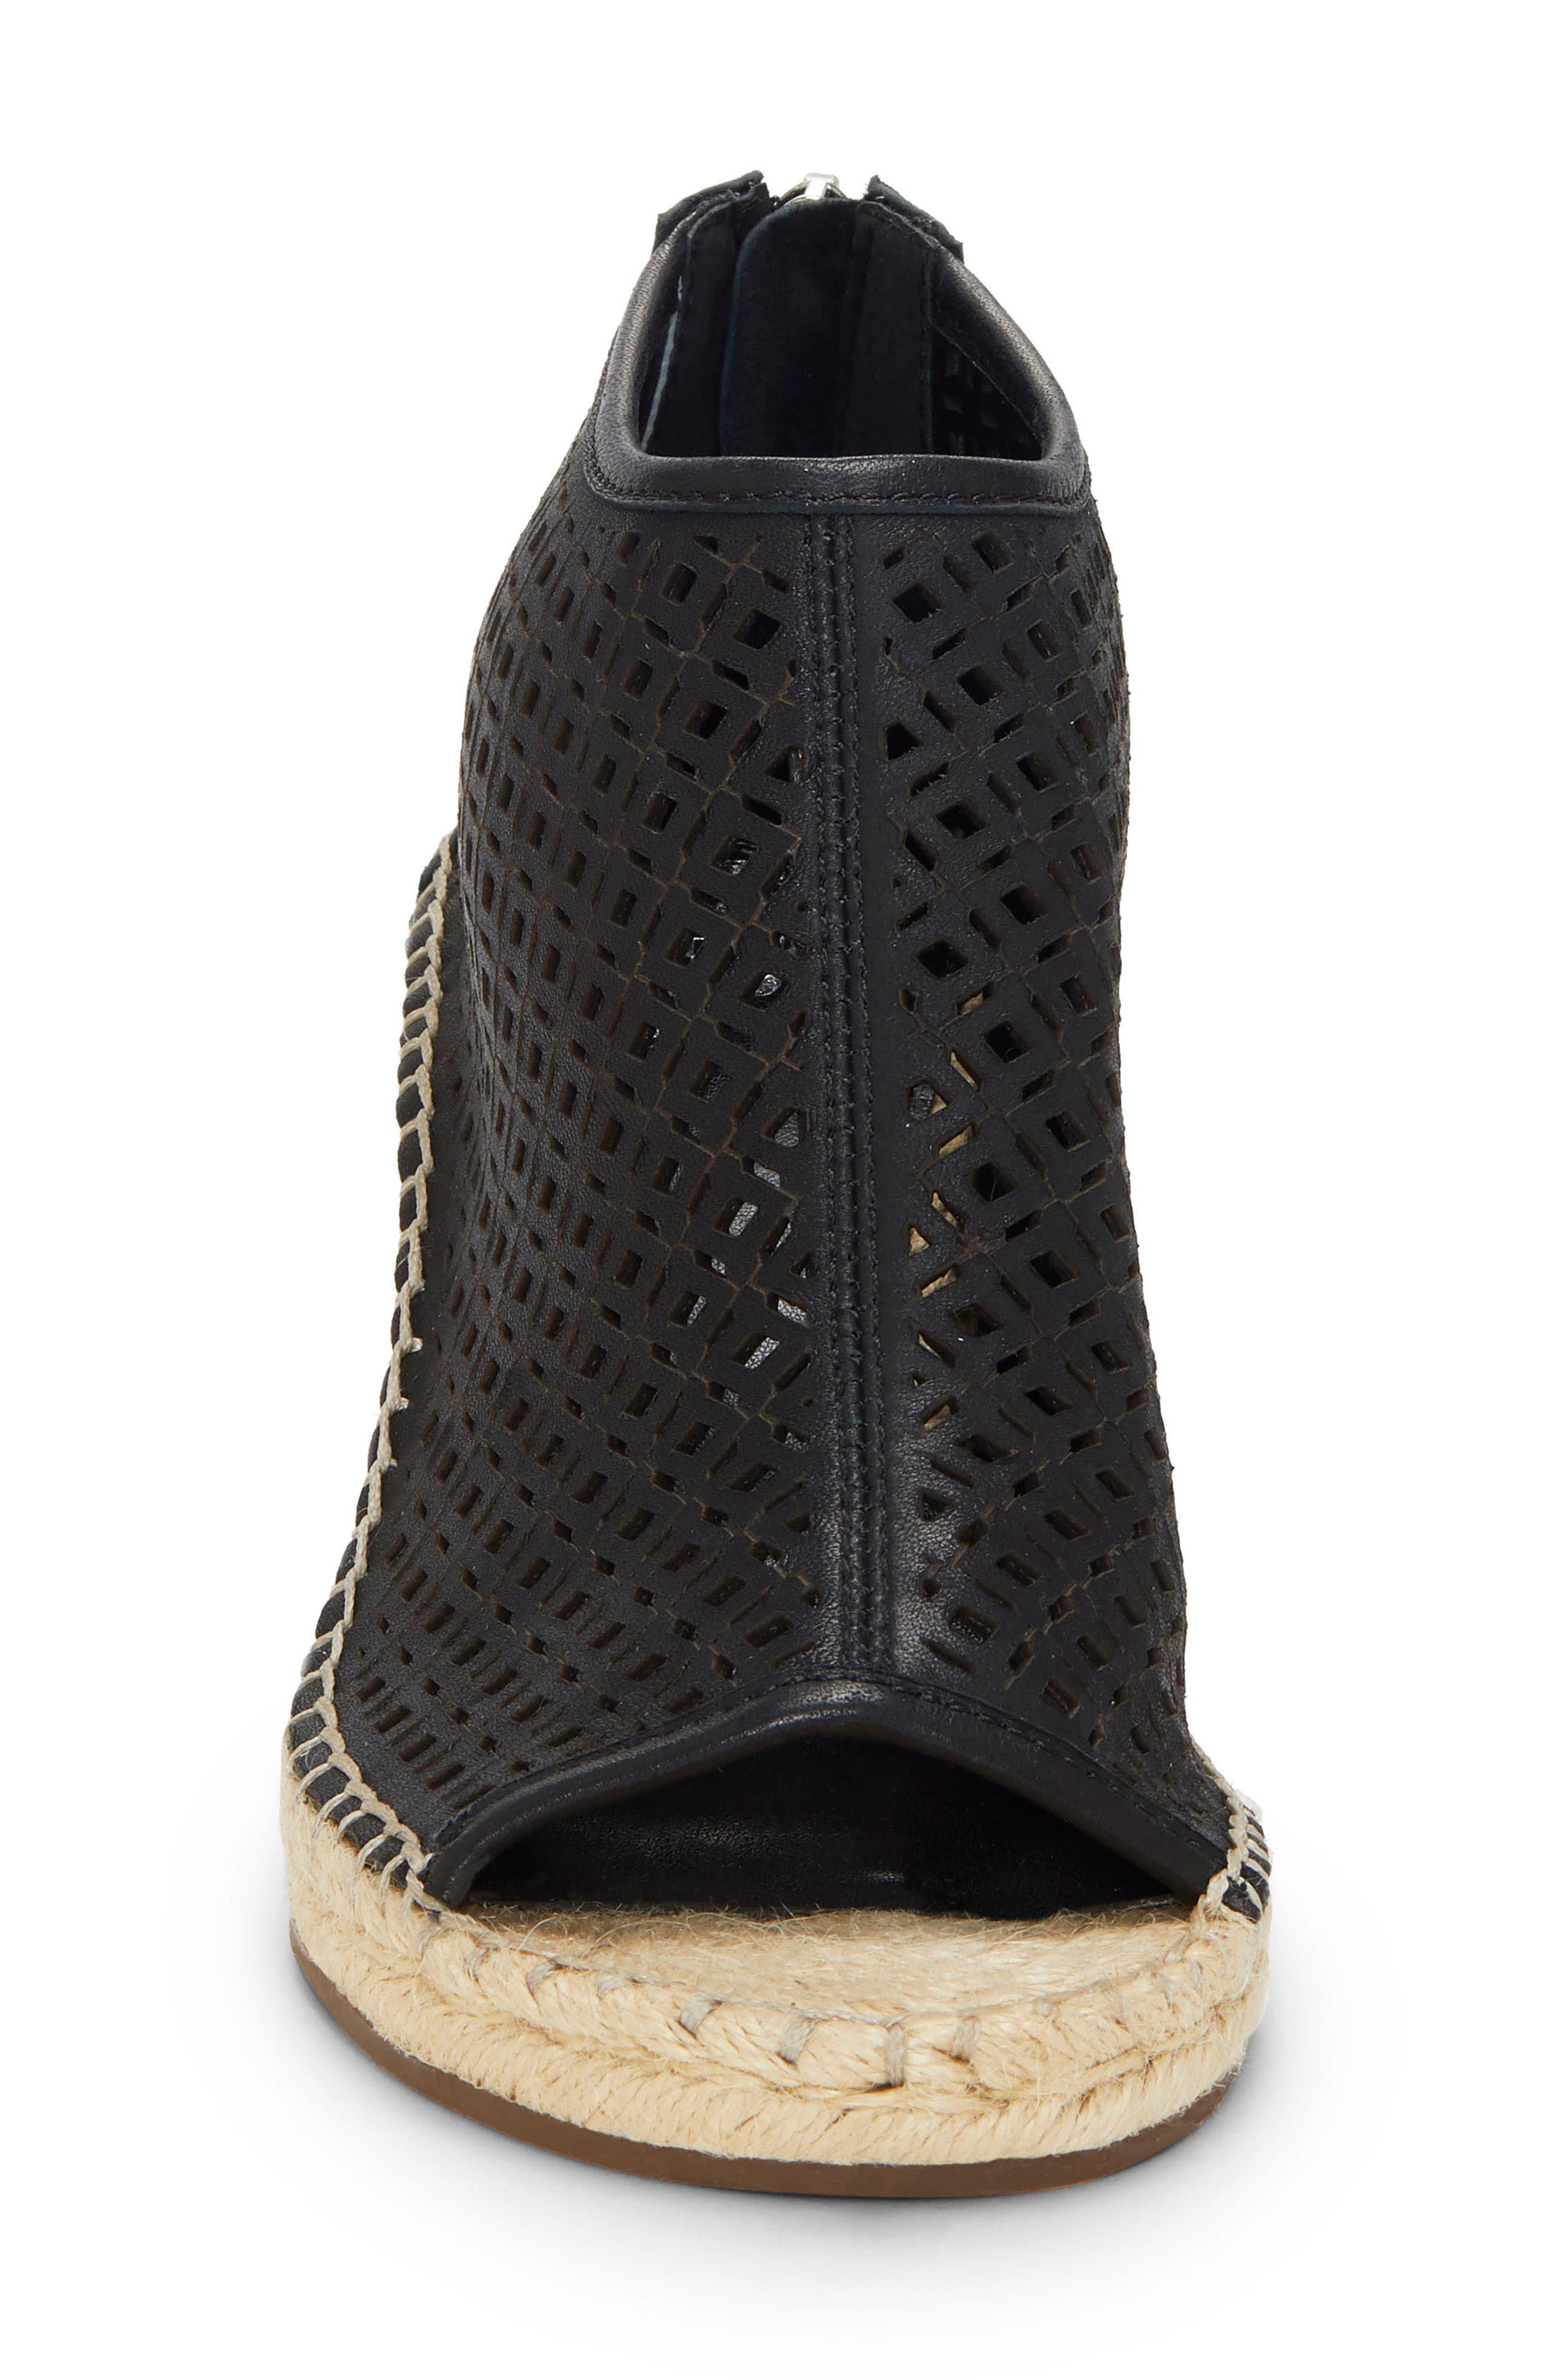 Vince Camuto Boots Lereena Bootie